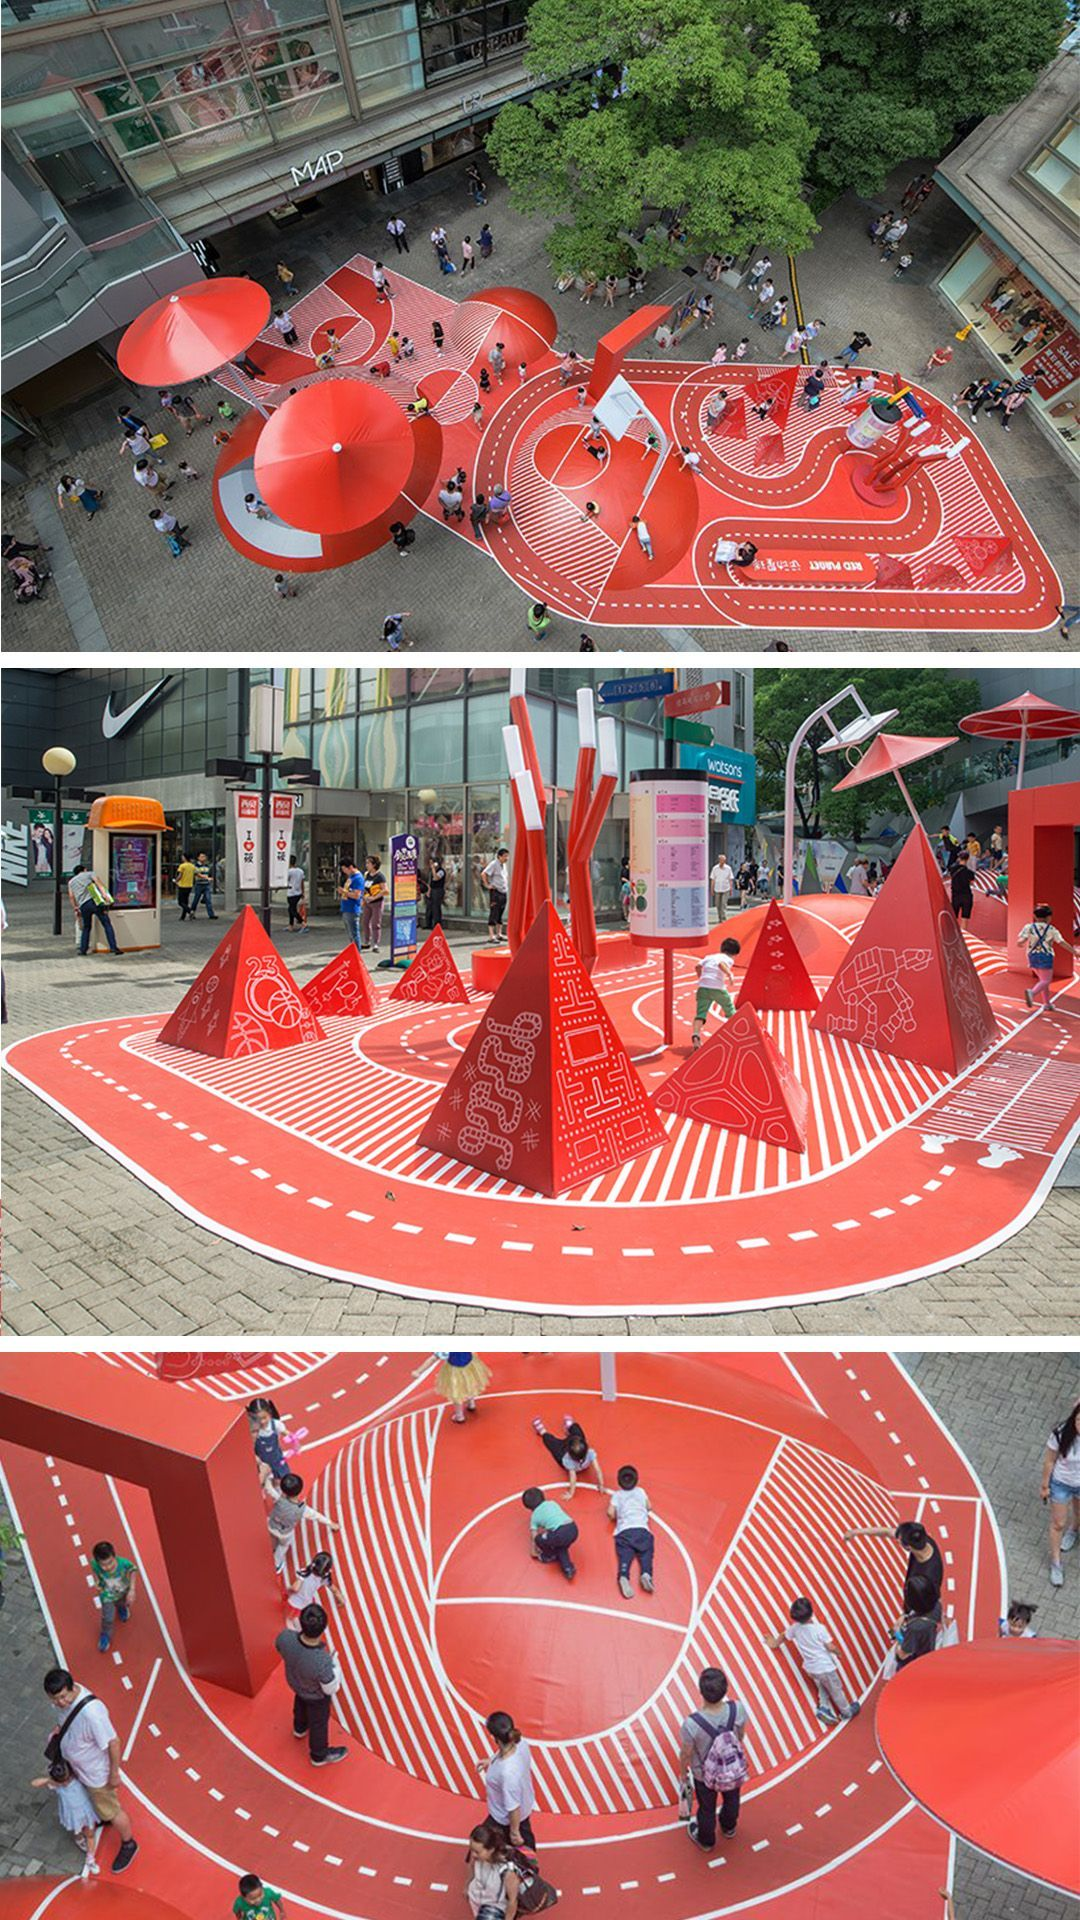 Garden Design 100architects Design Vibrant Red Planet Playground In Shanghai Arch2o Com Playground Design Playgrounds Architecture Playground